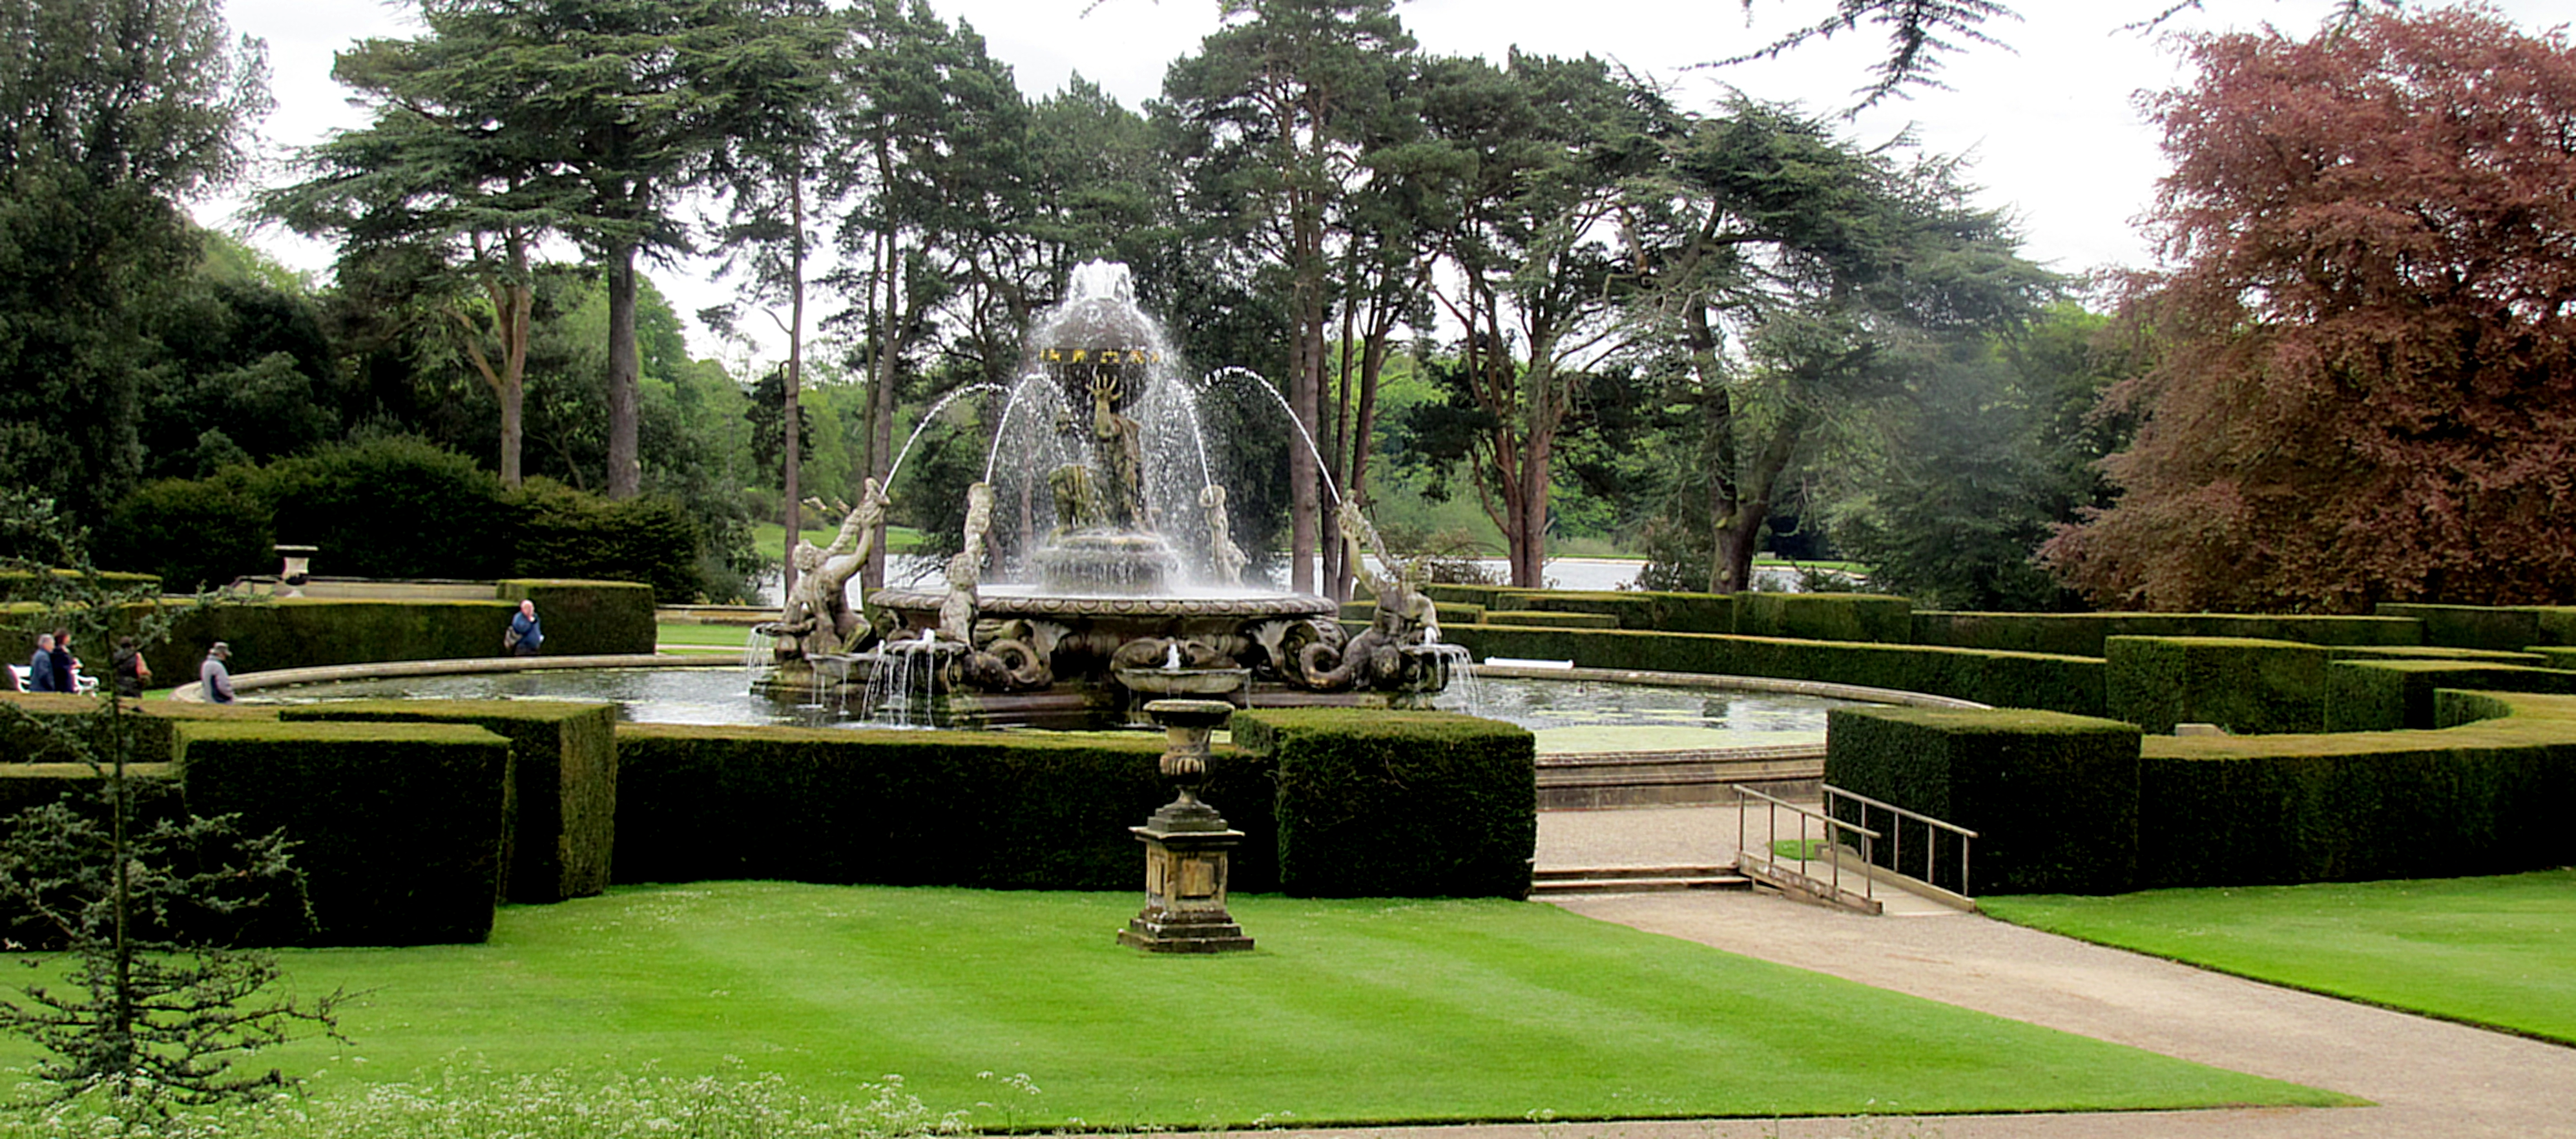 The Atlas Fountain is the main feature of the yard.